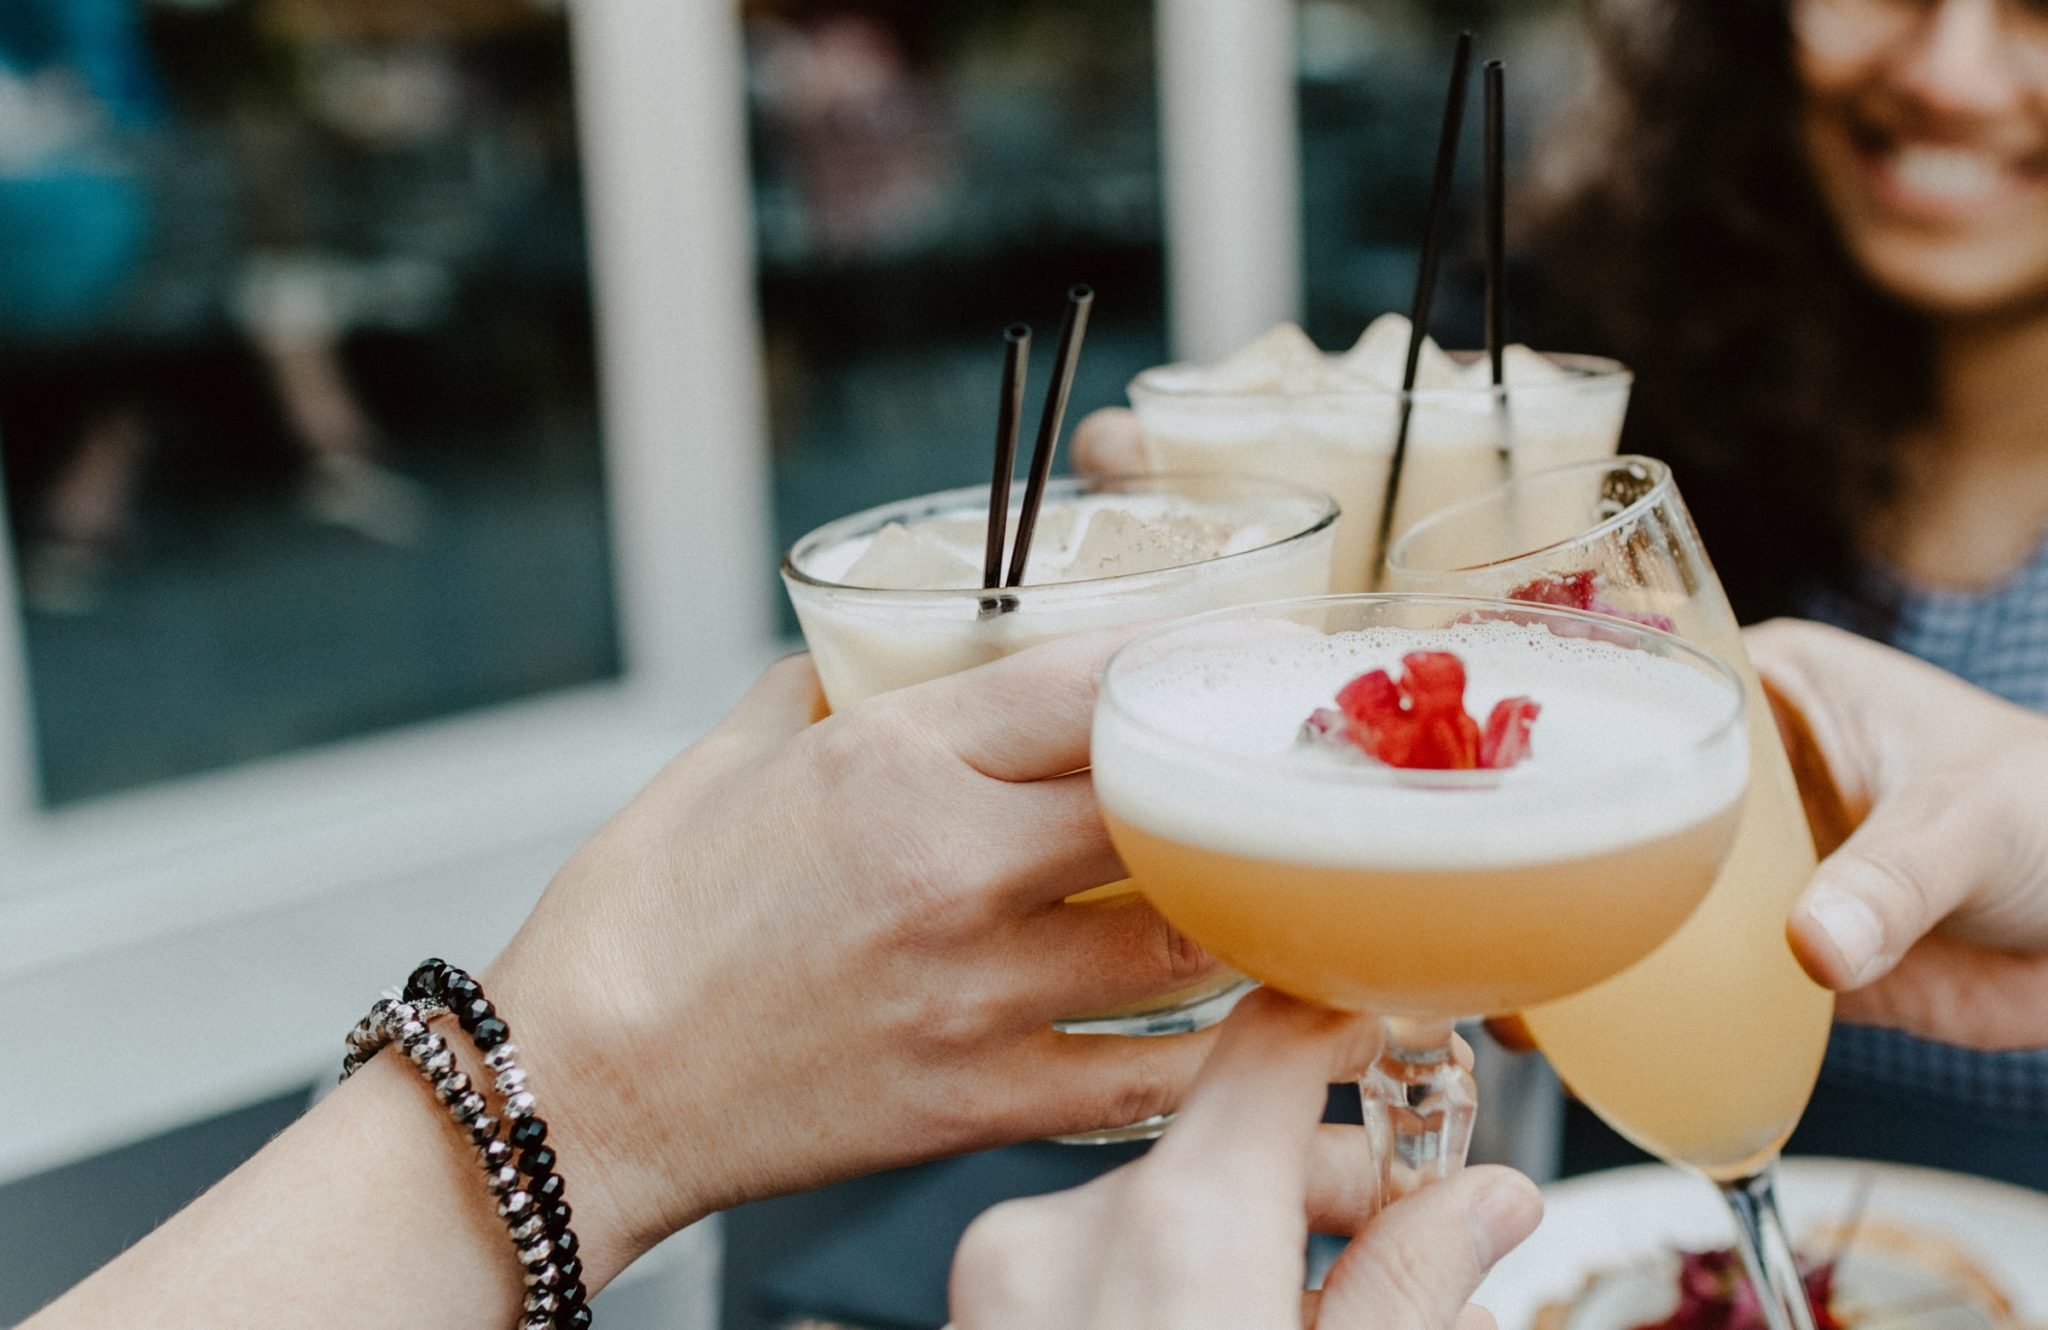 People holding cocktails - french martini and long island iced tea, saying cheers. The best summer cocktails -Photo by Kelly Sikkema on Unsplash